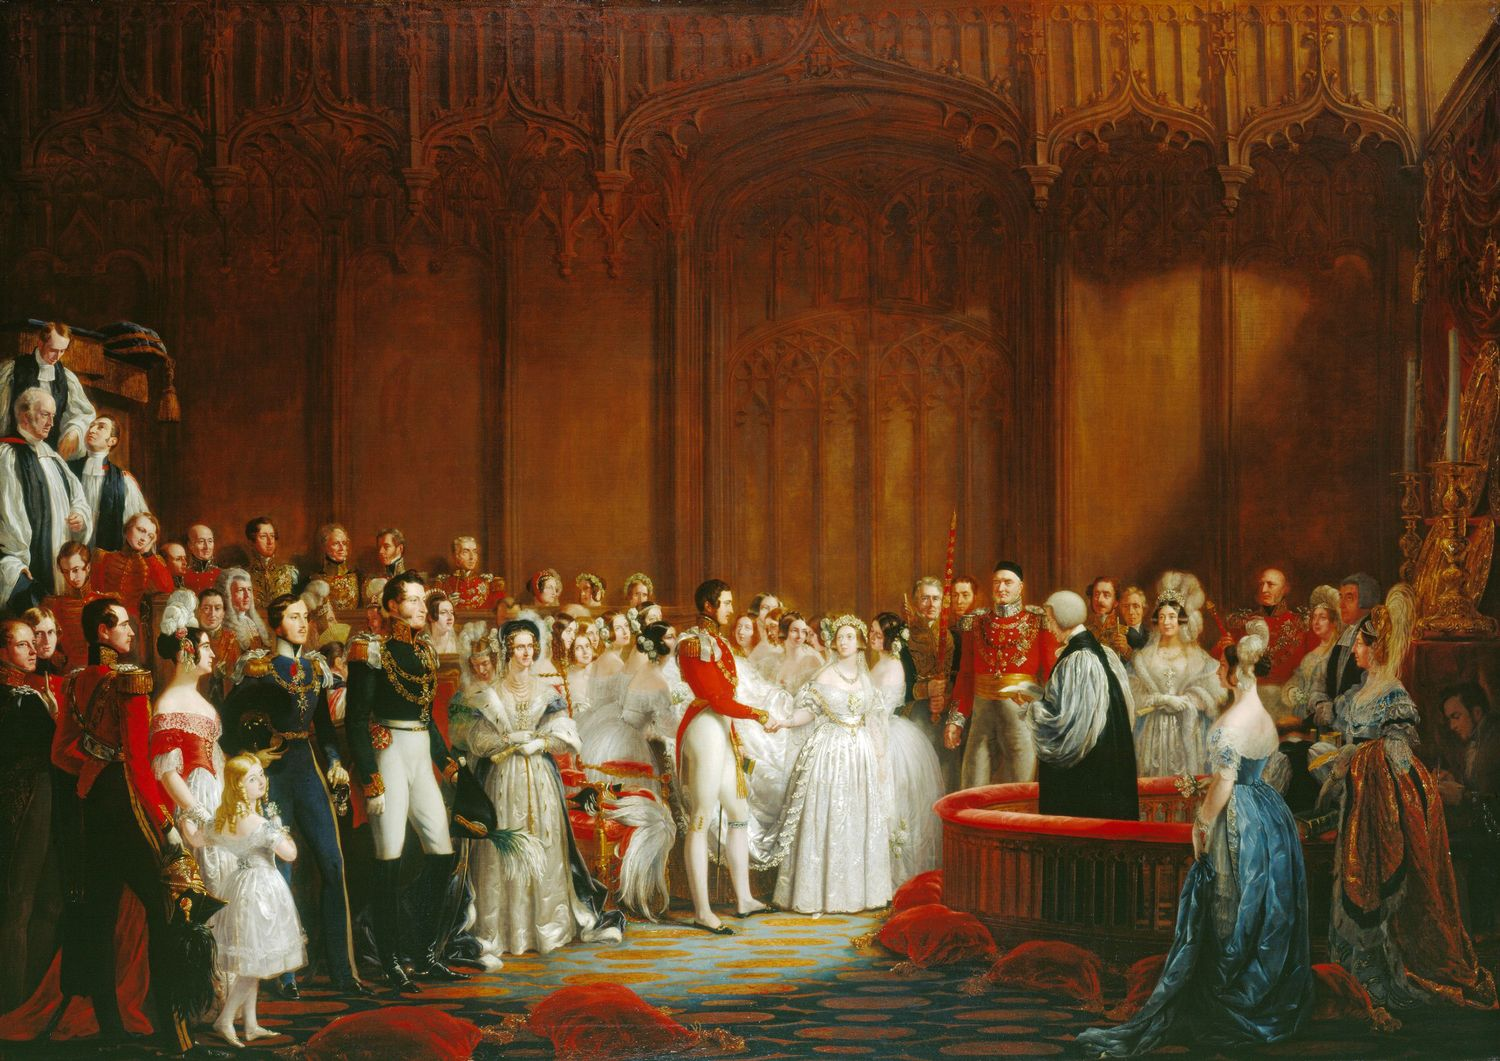 HIstory of English Weddings